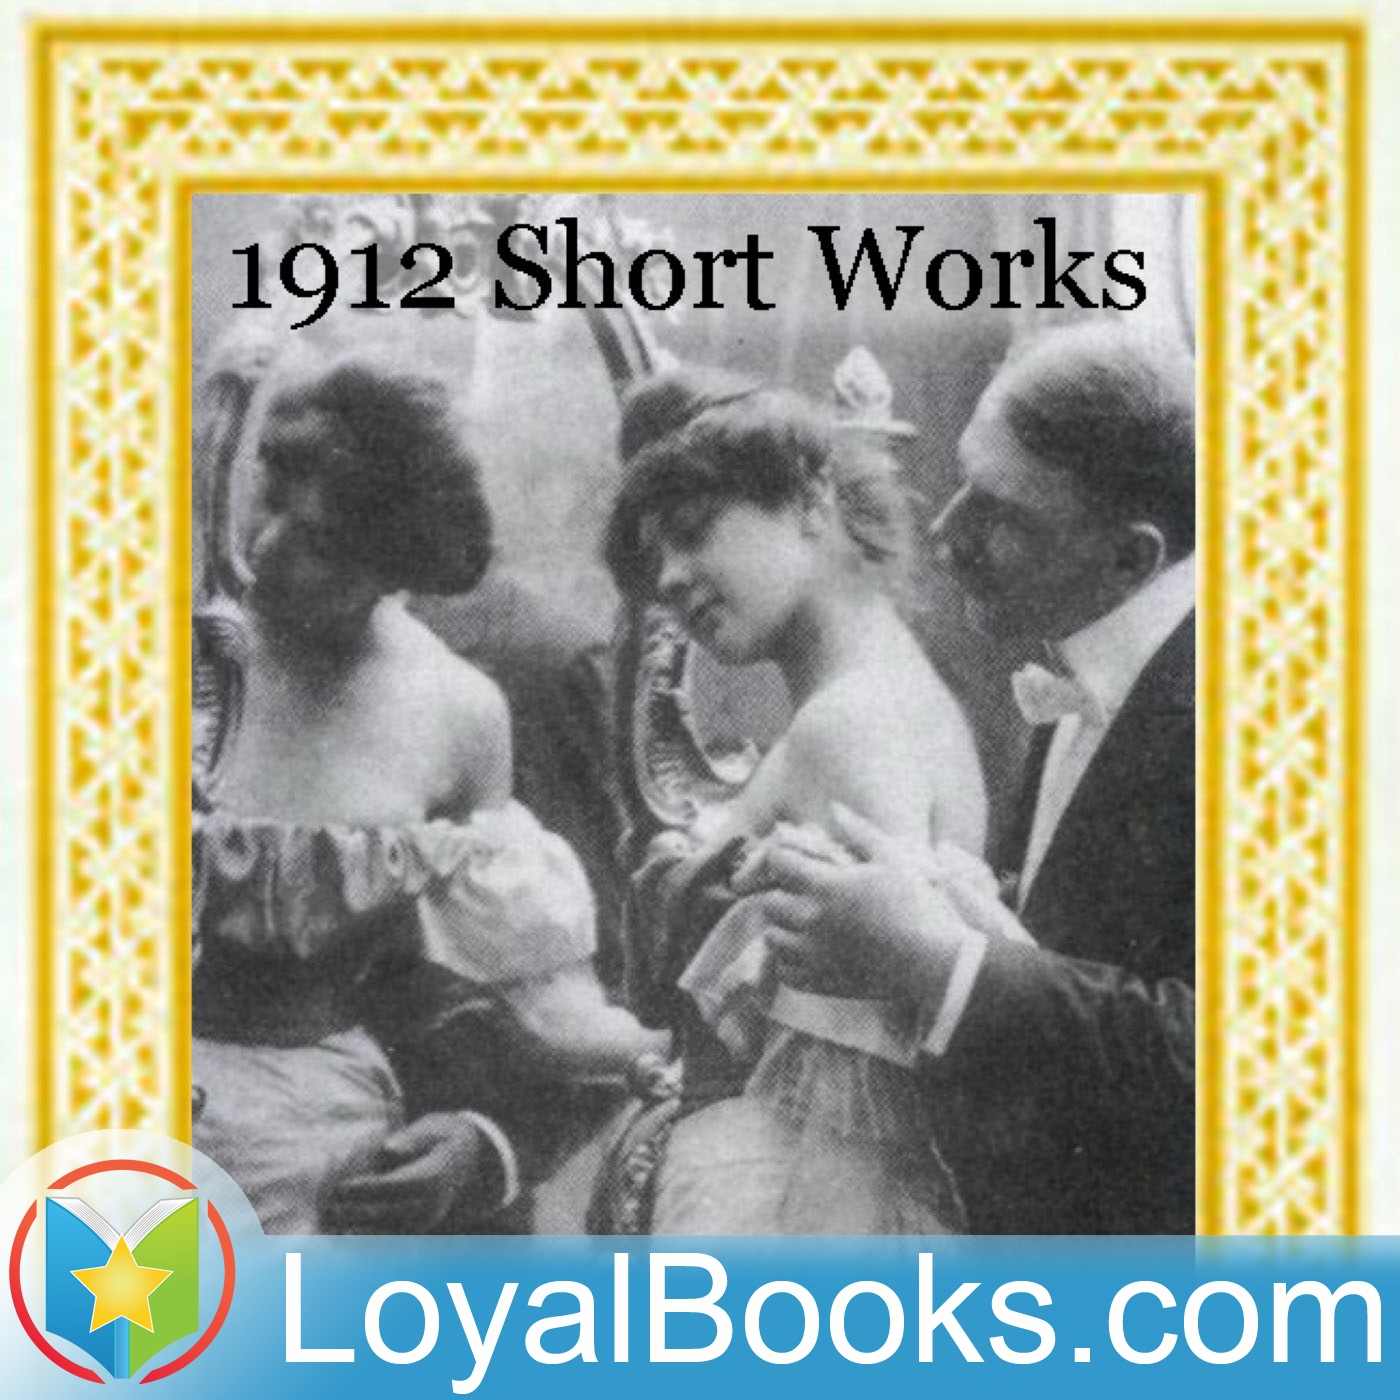 <![CDATA[1912: Short Works Collection by Unknown]]>